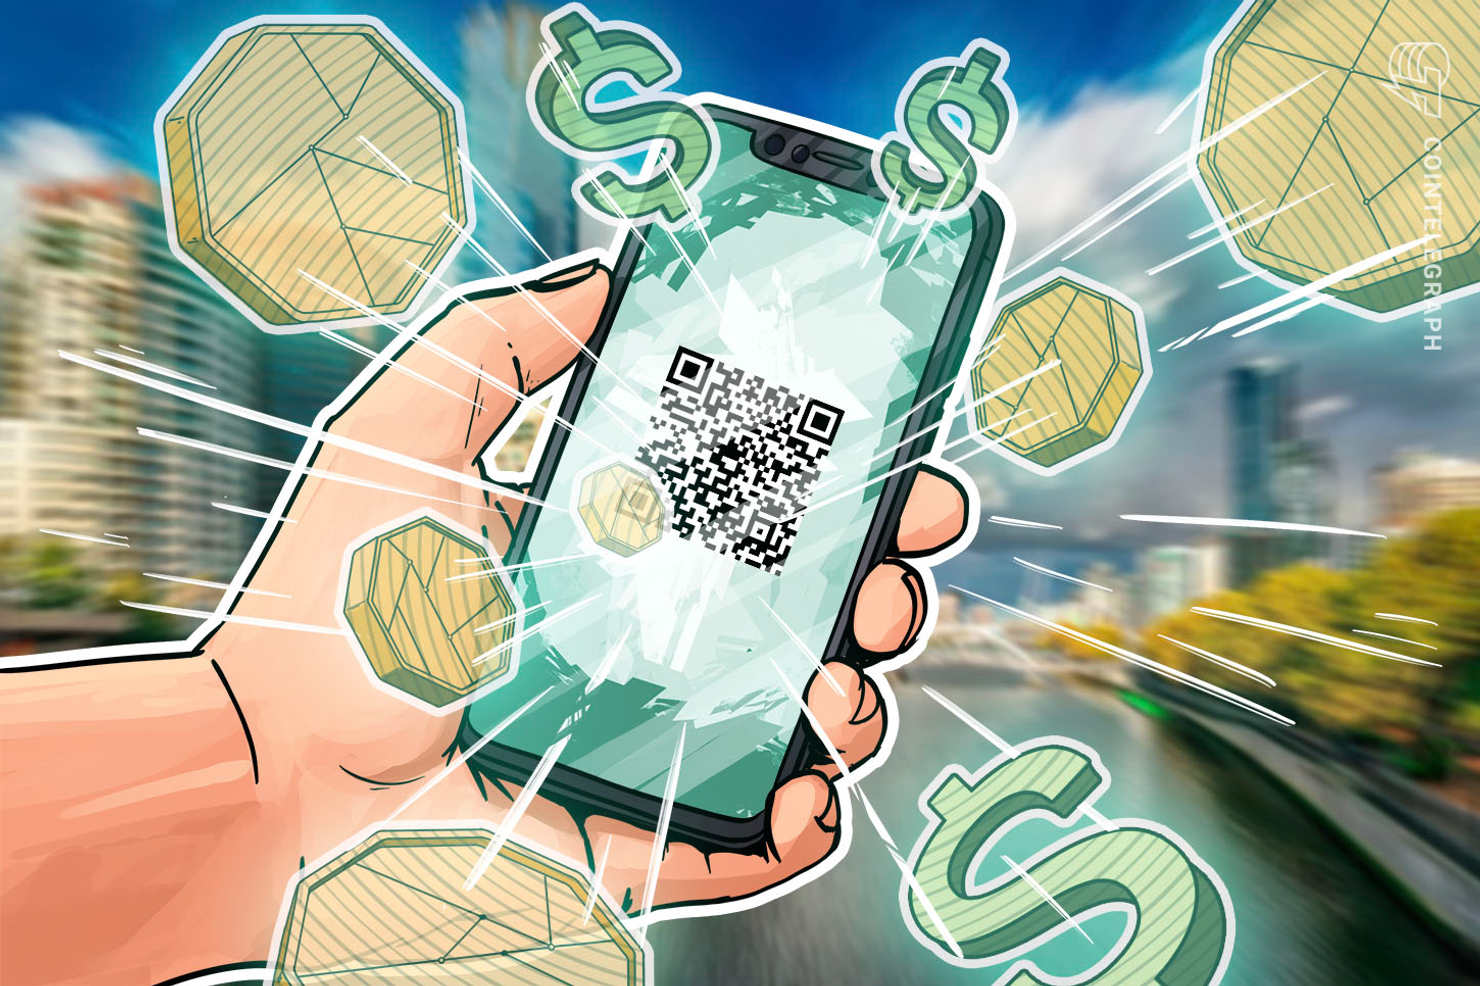 1.4 Million Brazilian Point-of-Sale Devices to Support Crypto Payments